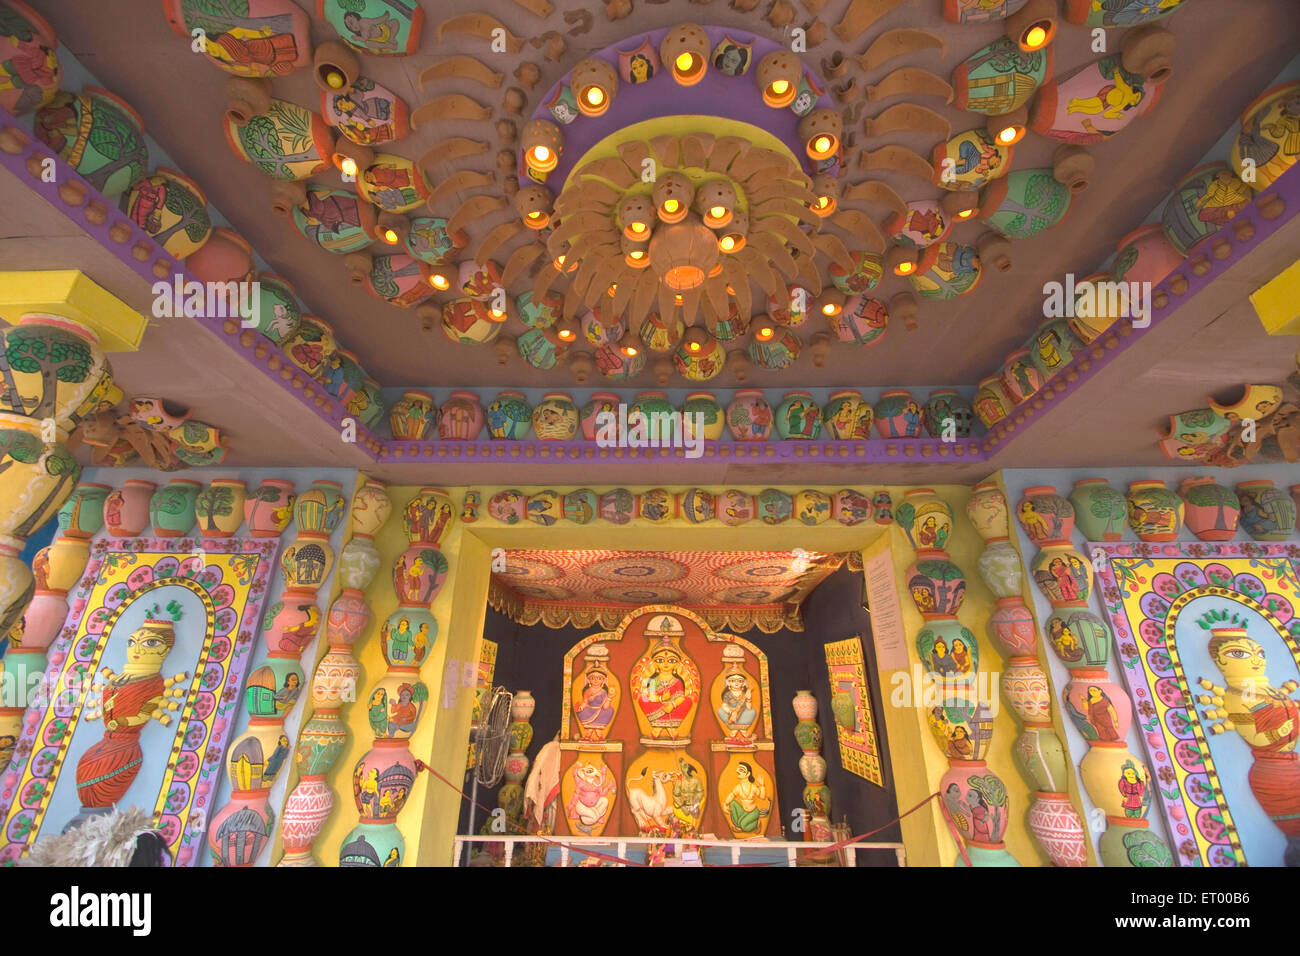 Decorated Mandap And Idols Of Goddess For Durga Puja Kolkata